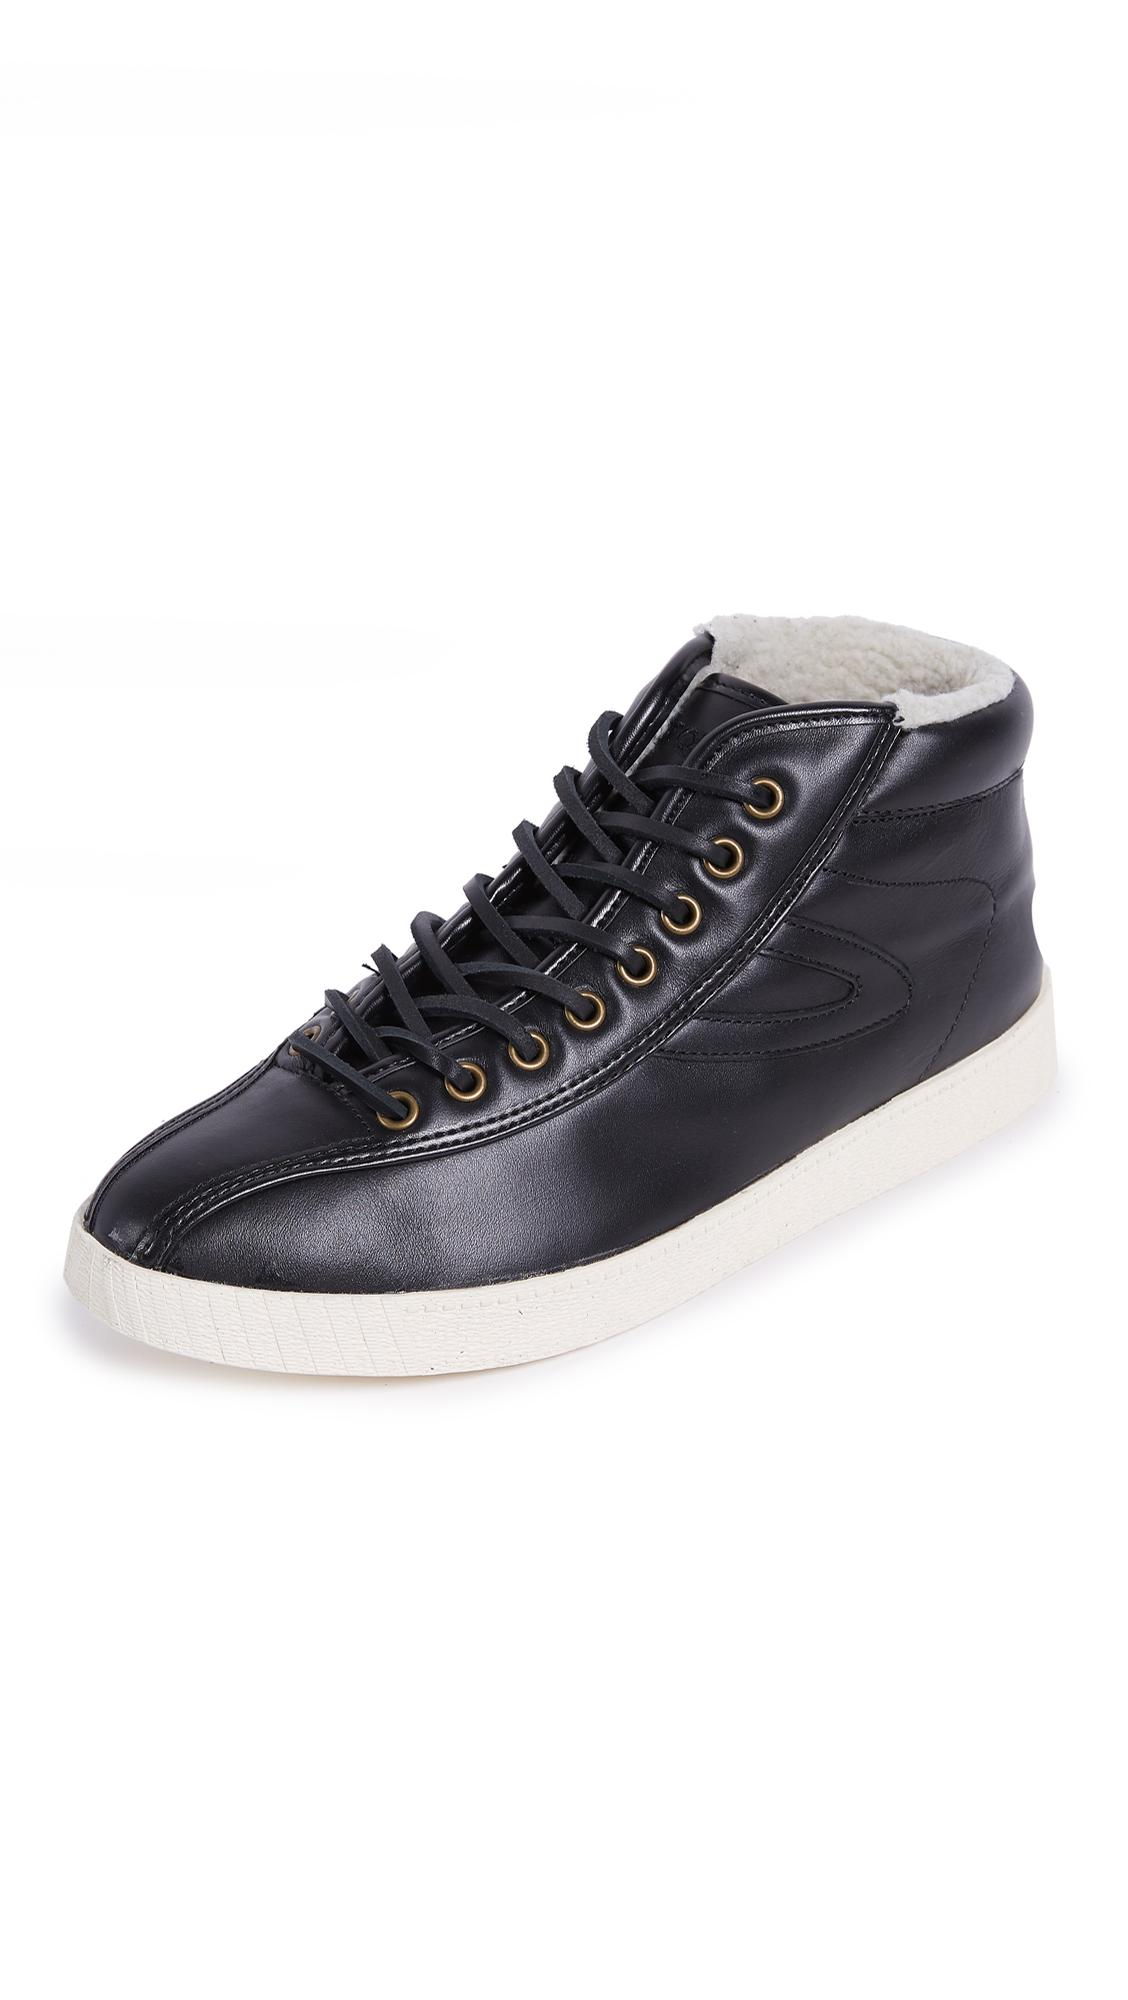 Tretorn Nylite High Leather Sneakers In Black